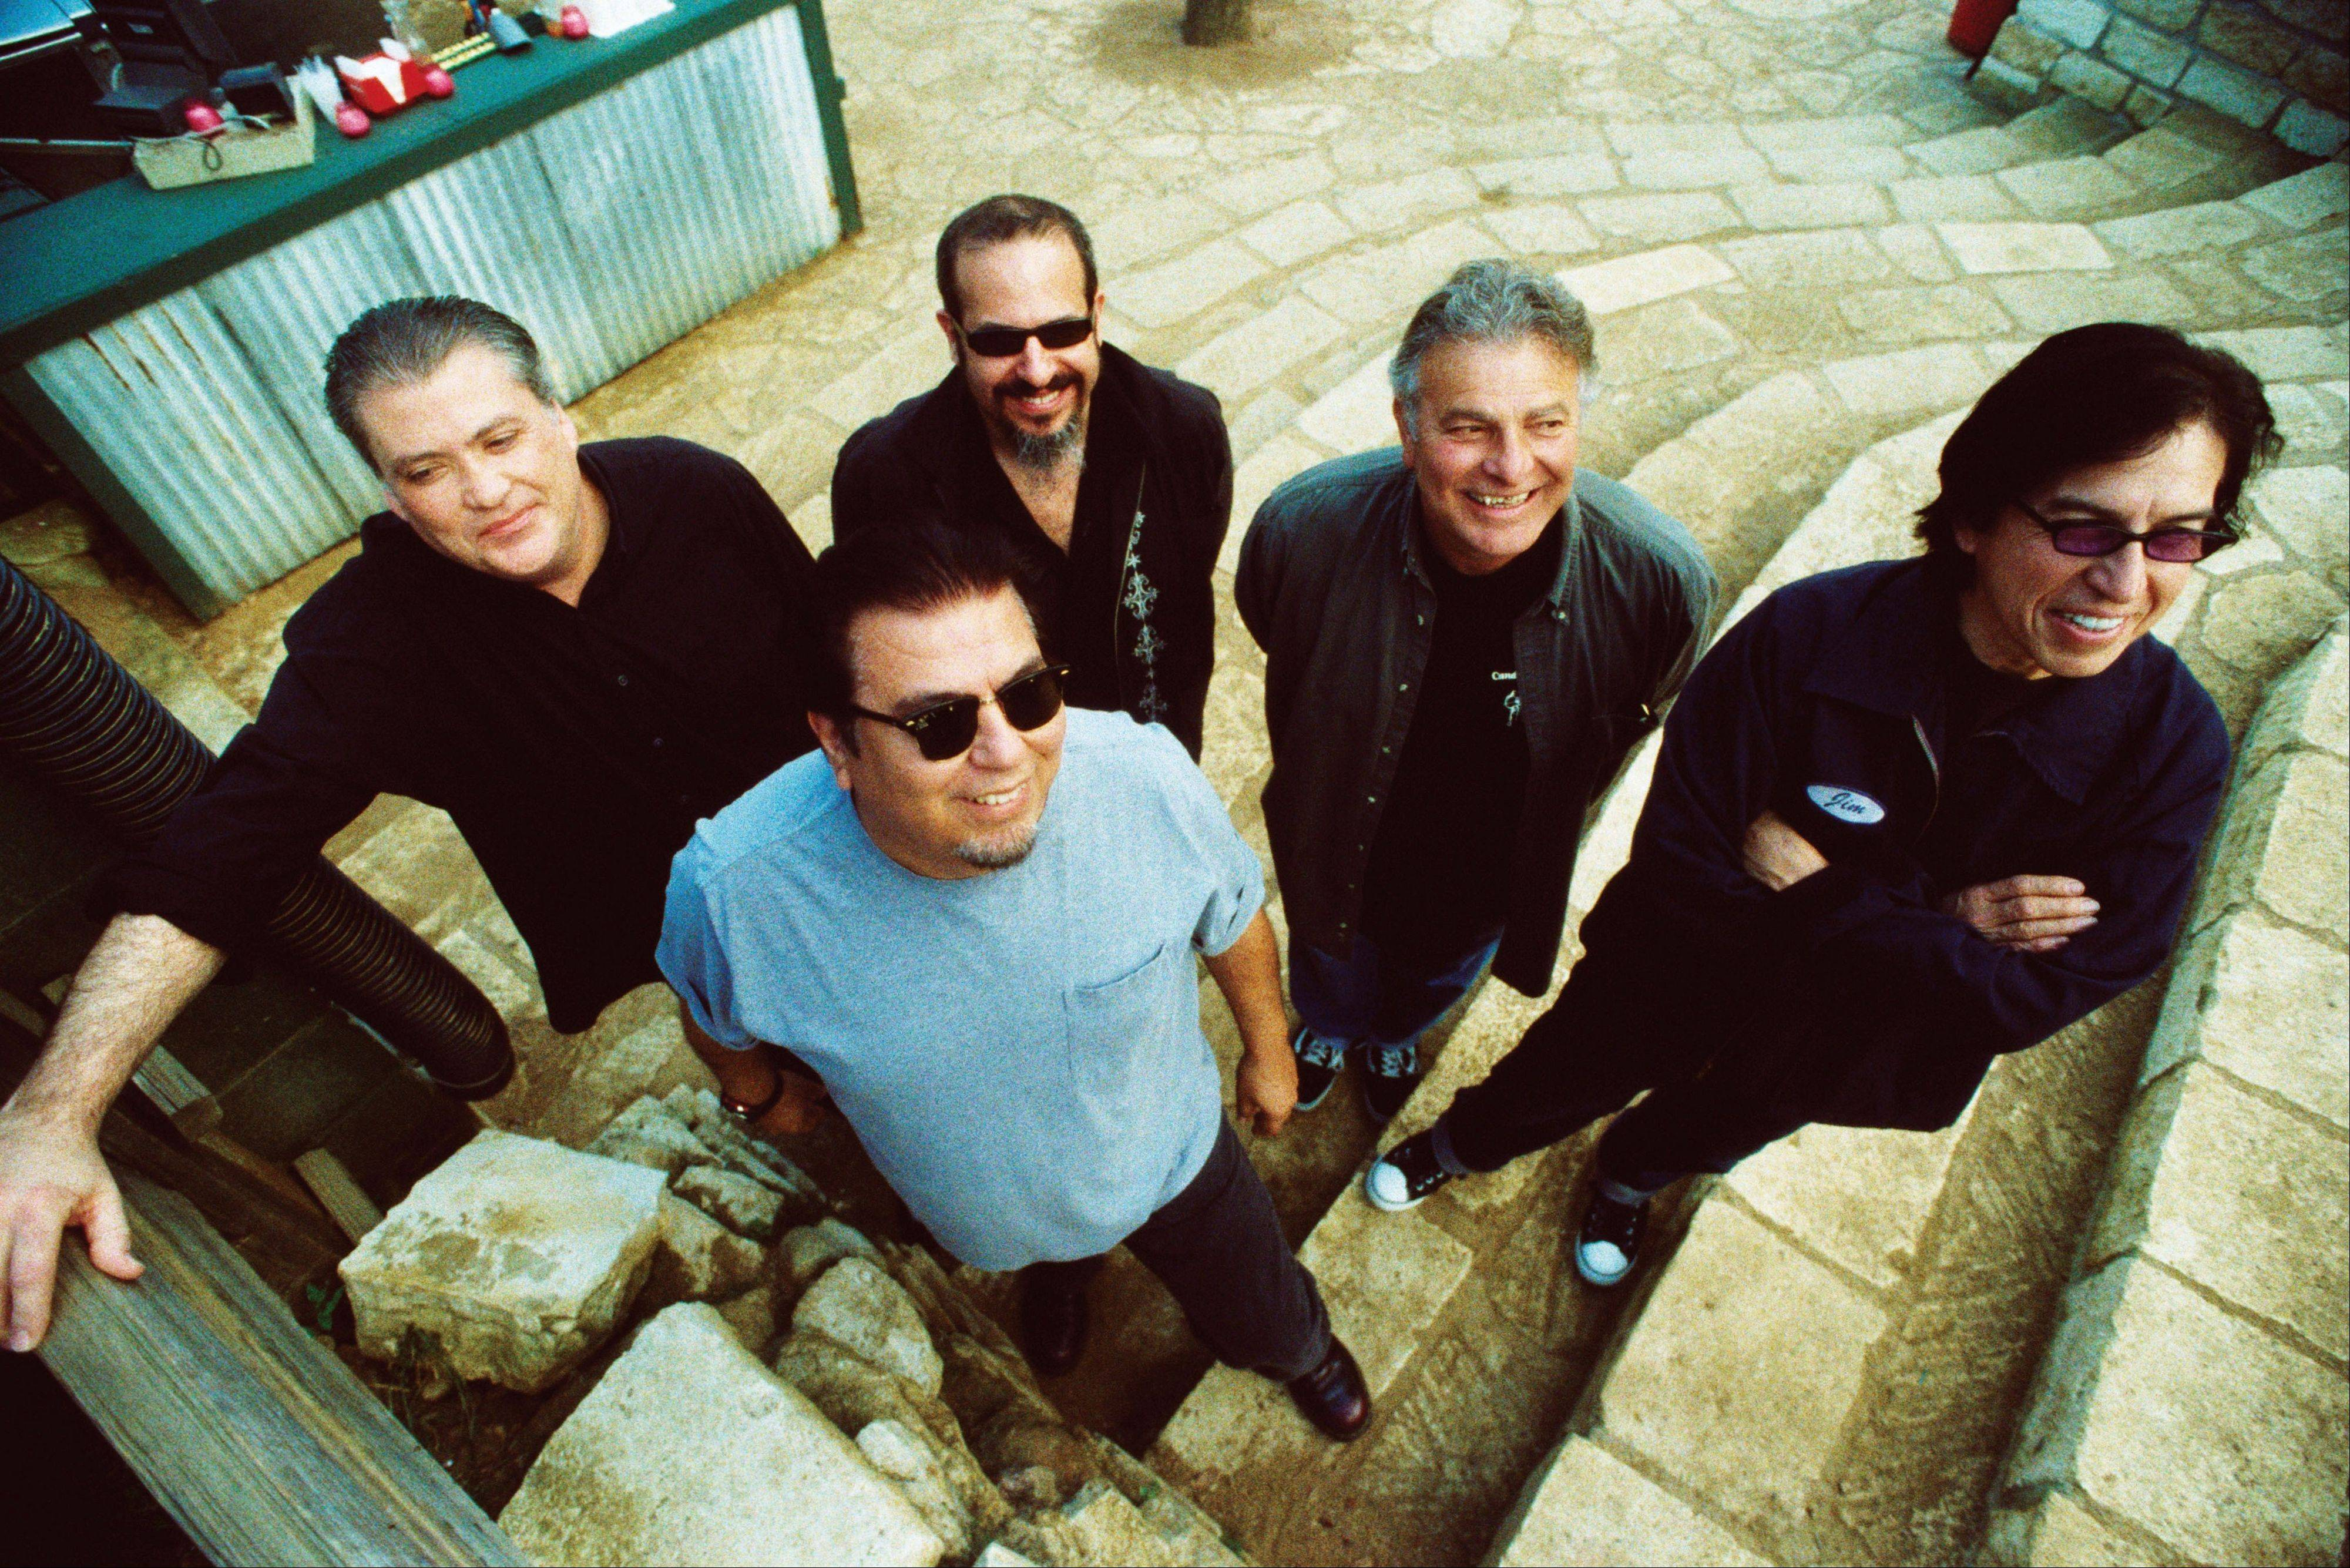 40 years ago, Los Lobos had the boldness, and some might even say the naiveté, to fuse punk rock with Mexican folk tunes.